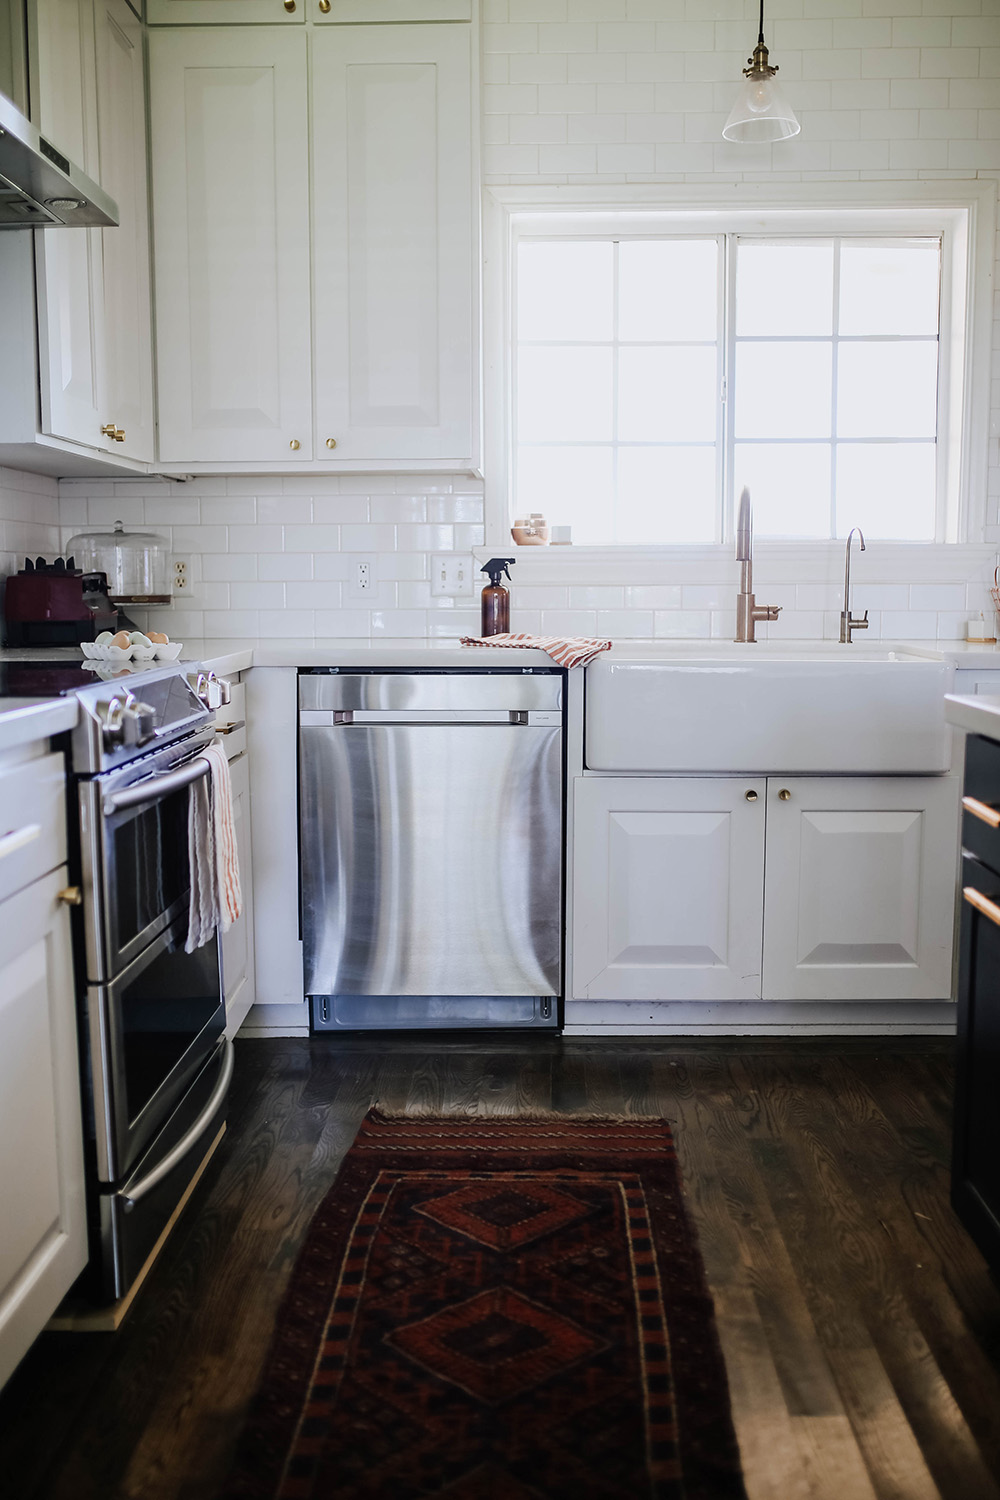 A stainless steel Samsung dishwasher in the corner of a kitchen surrounded by white kitchen cabinets.